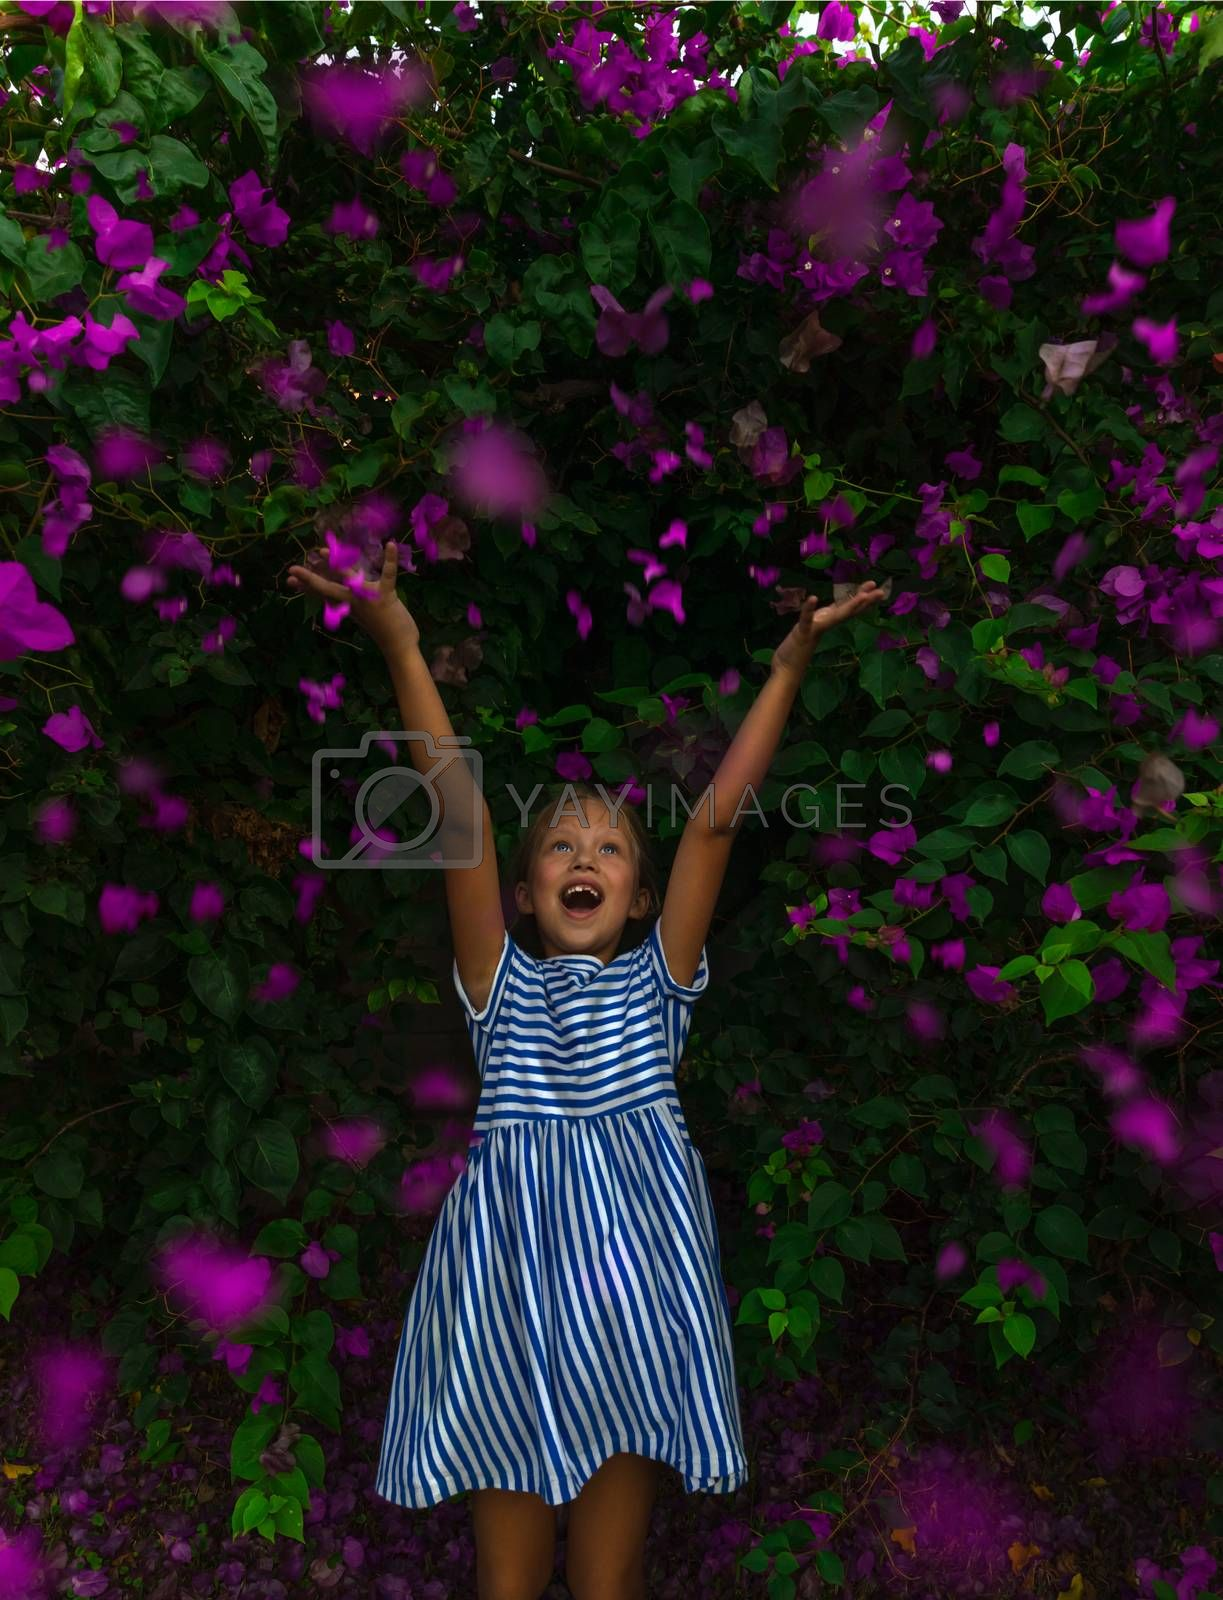 Royalty free image of Happy Little Girl in Flowers Garden by Anna_Omelchenko